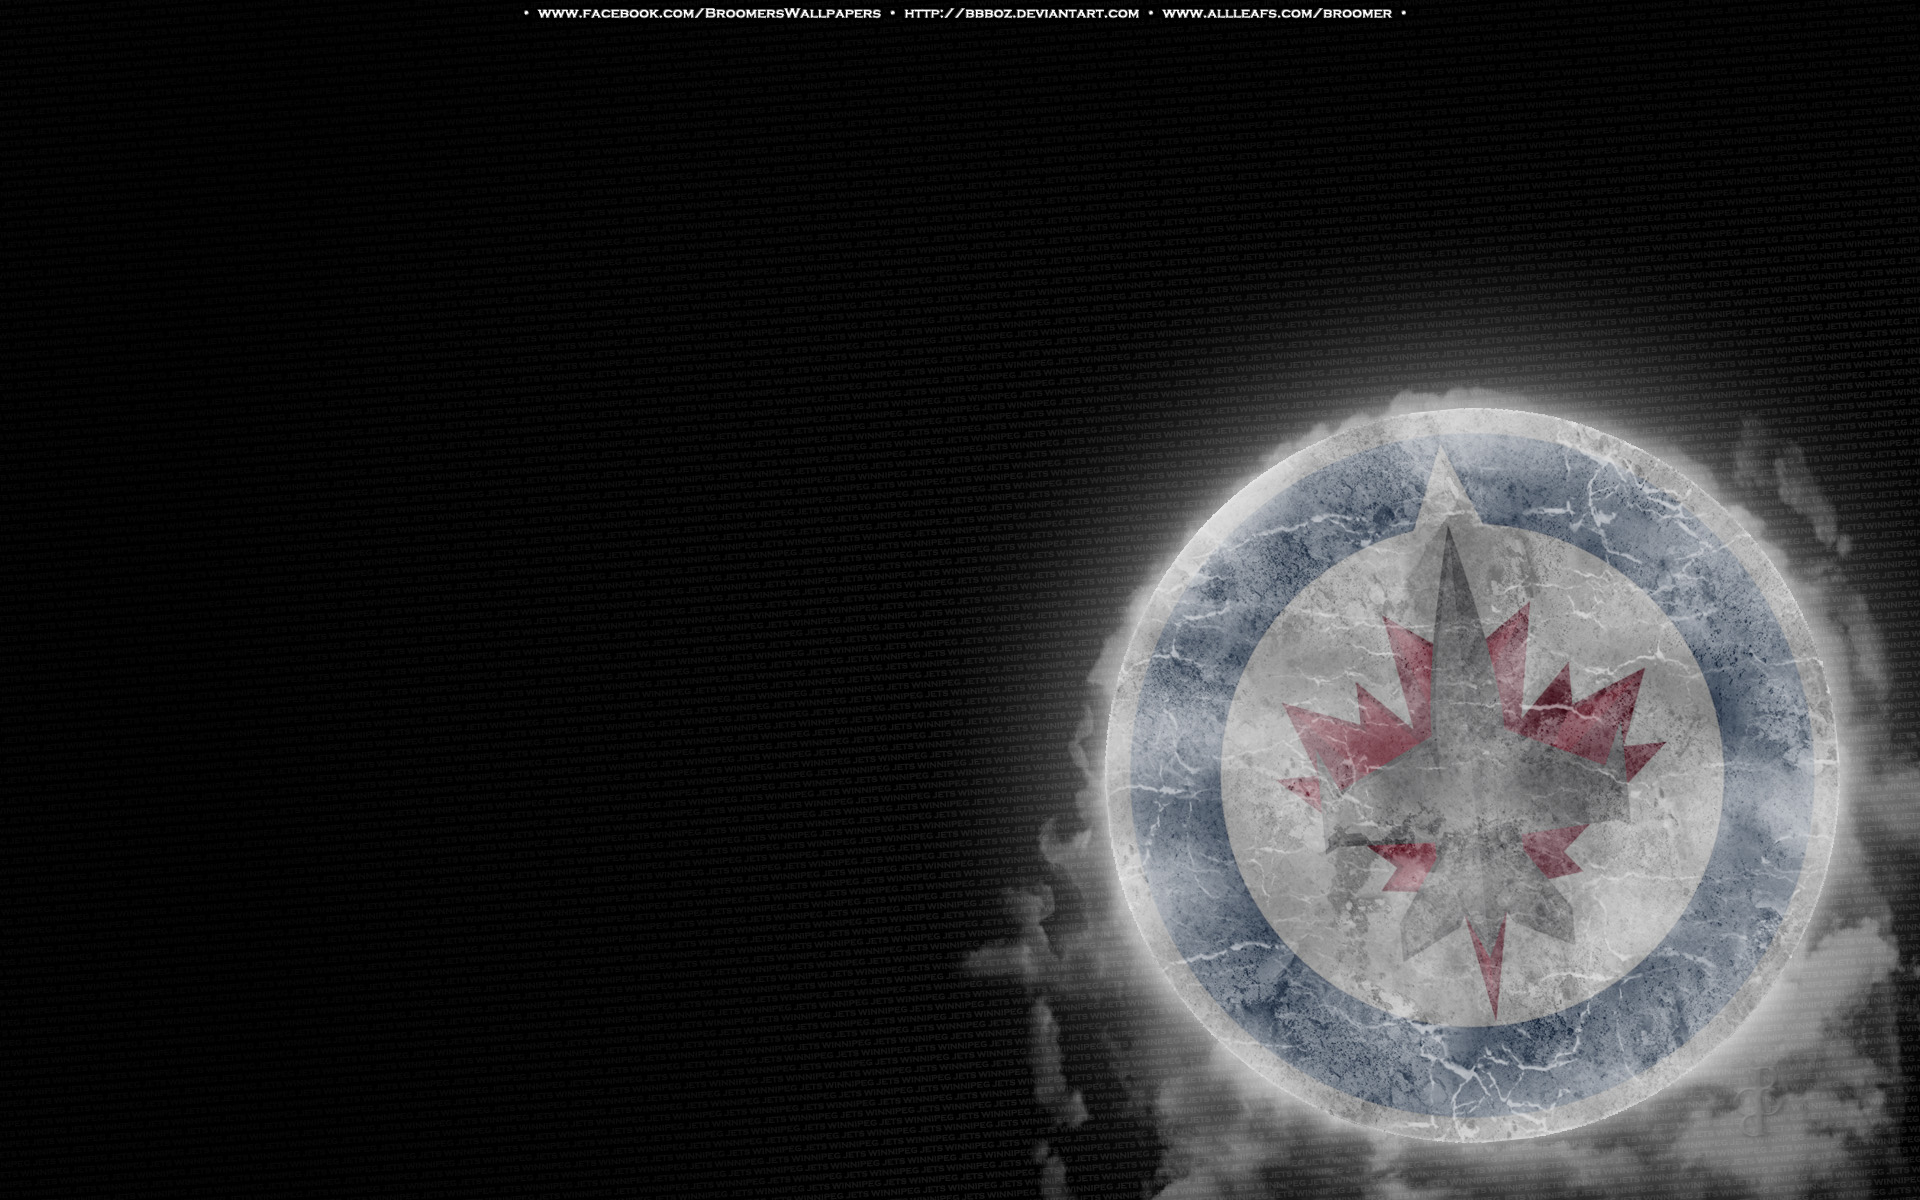 Winnipeg Jets Wallpapers   3K7A992   4USkY 1920x1200